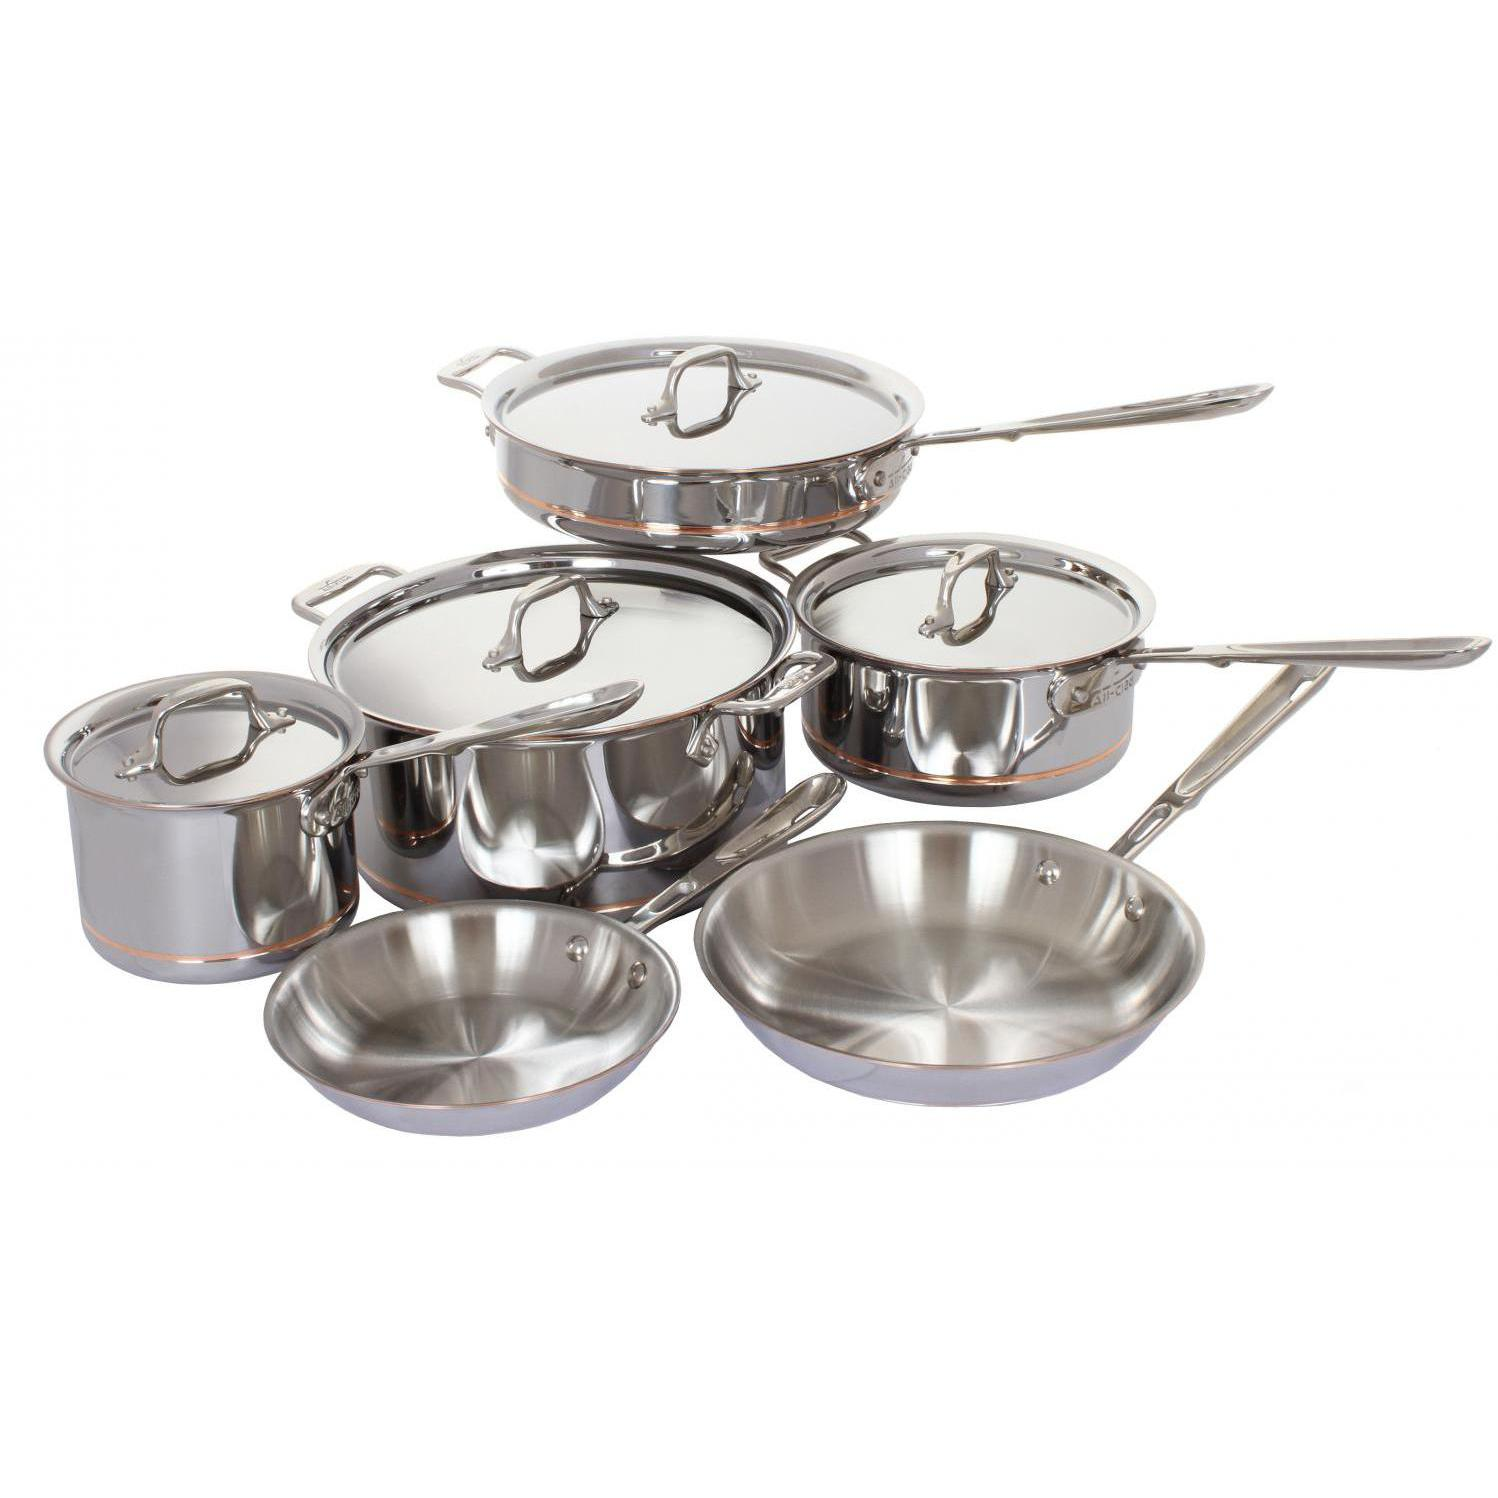 Picture of All-Clad Copper-Core Stainless Steel 10-Piece Cookware Set